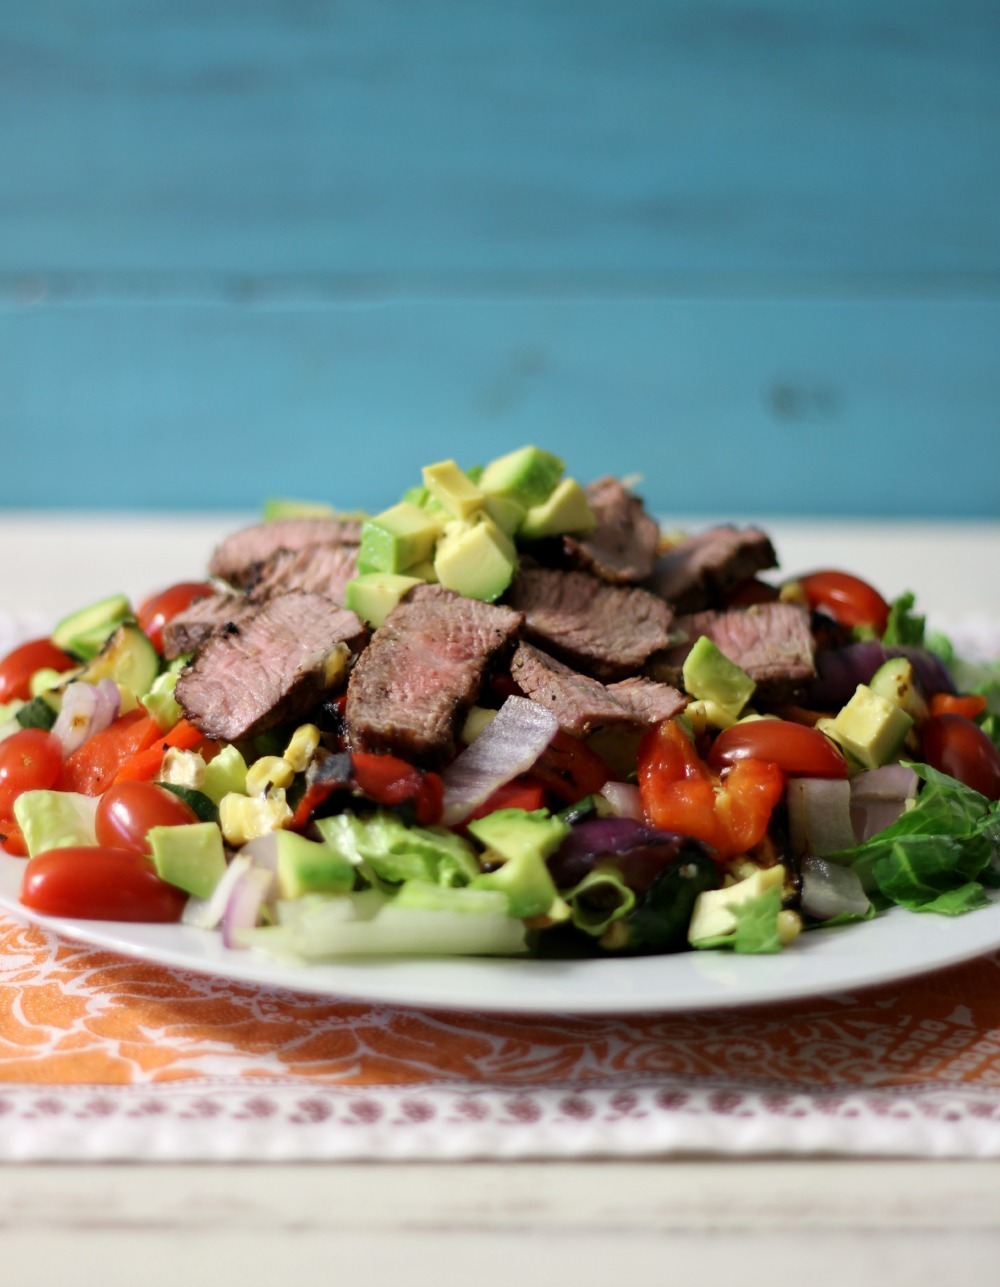 Grilled Vegetables and Tri-Tip Salad